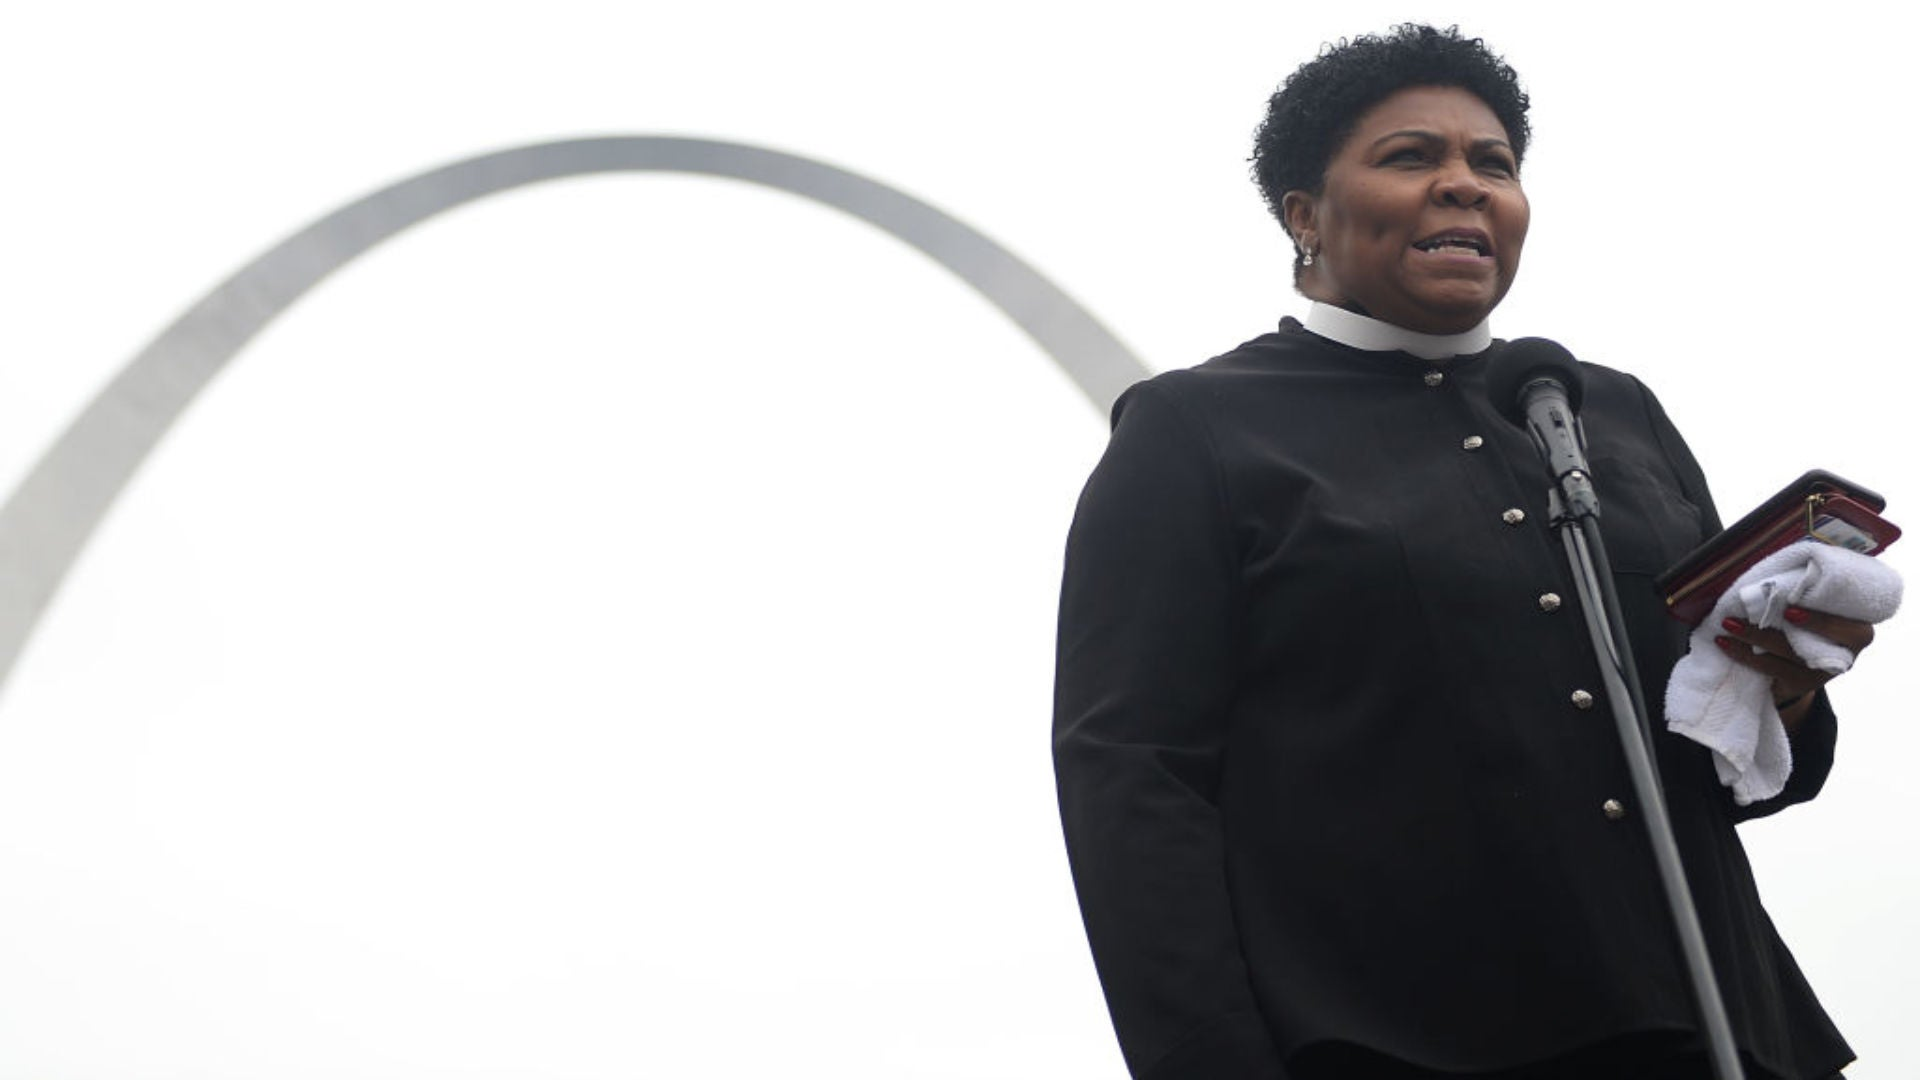 #RIPMedicalDebt: Church Leaders Join Forces To Clear Millions In Debt For Nearly 6,000 Chicagoans